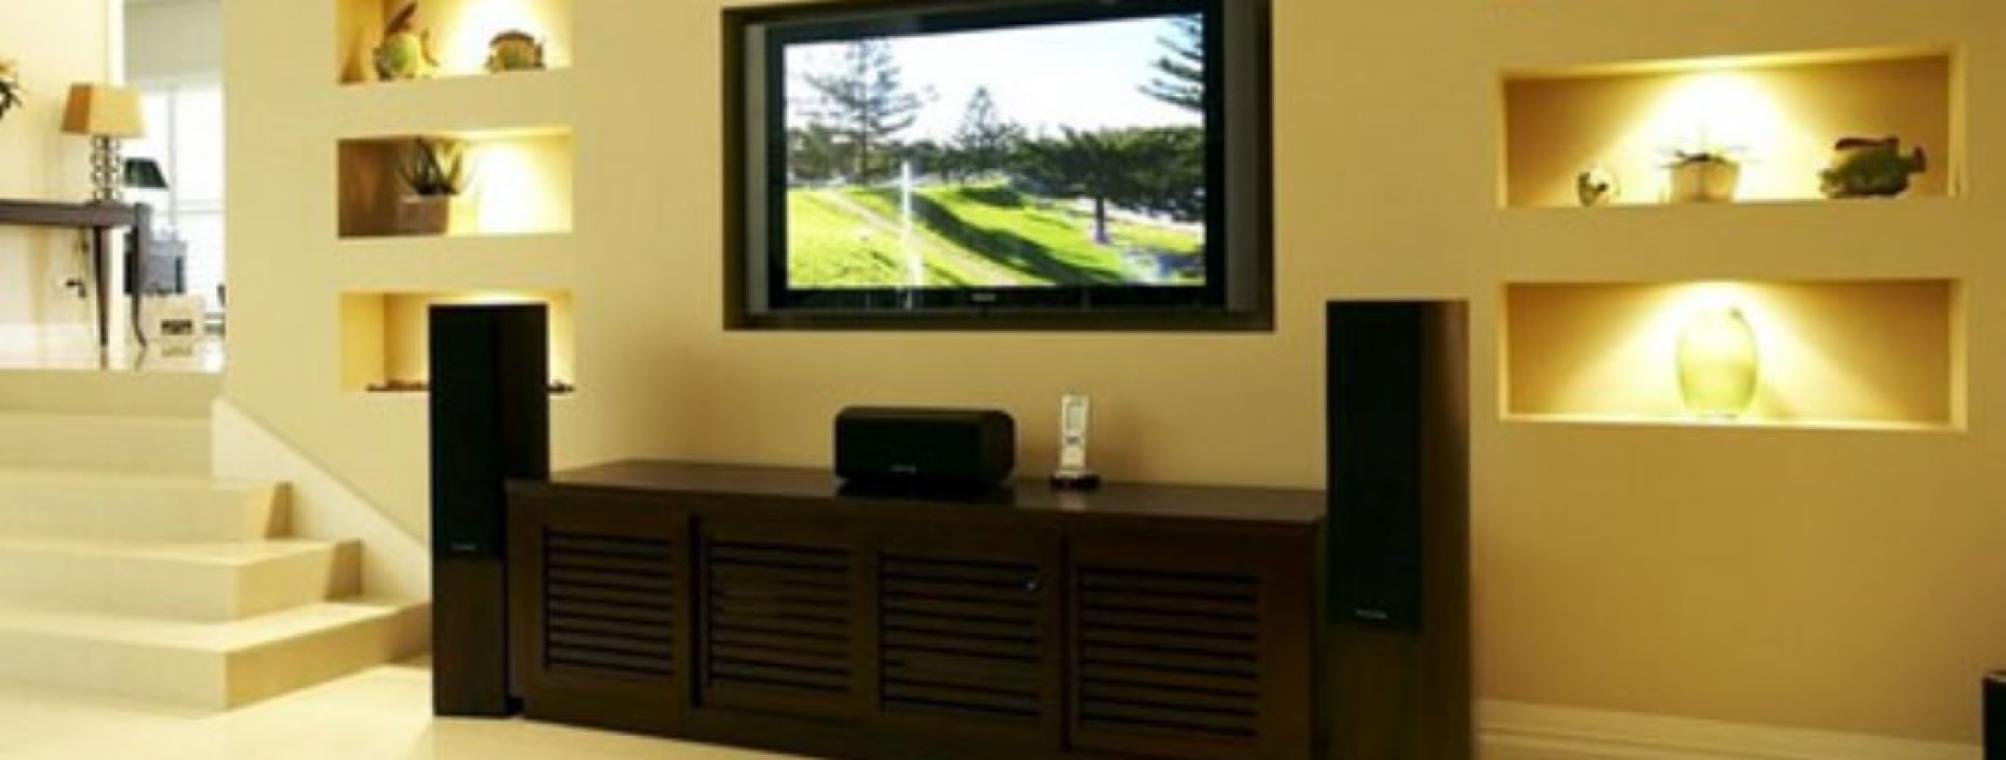 Wall-Mounted-TV